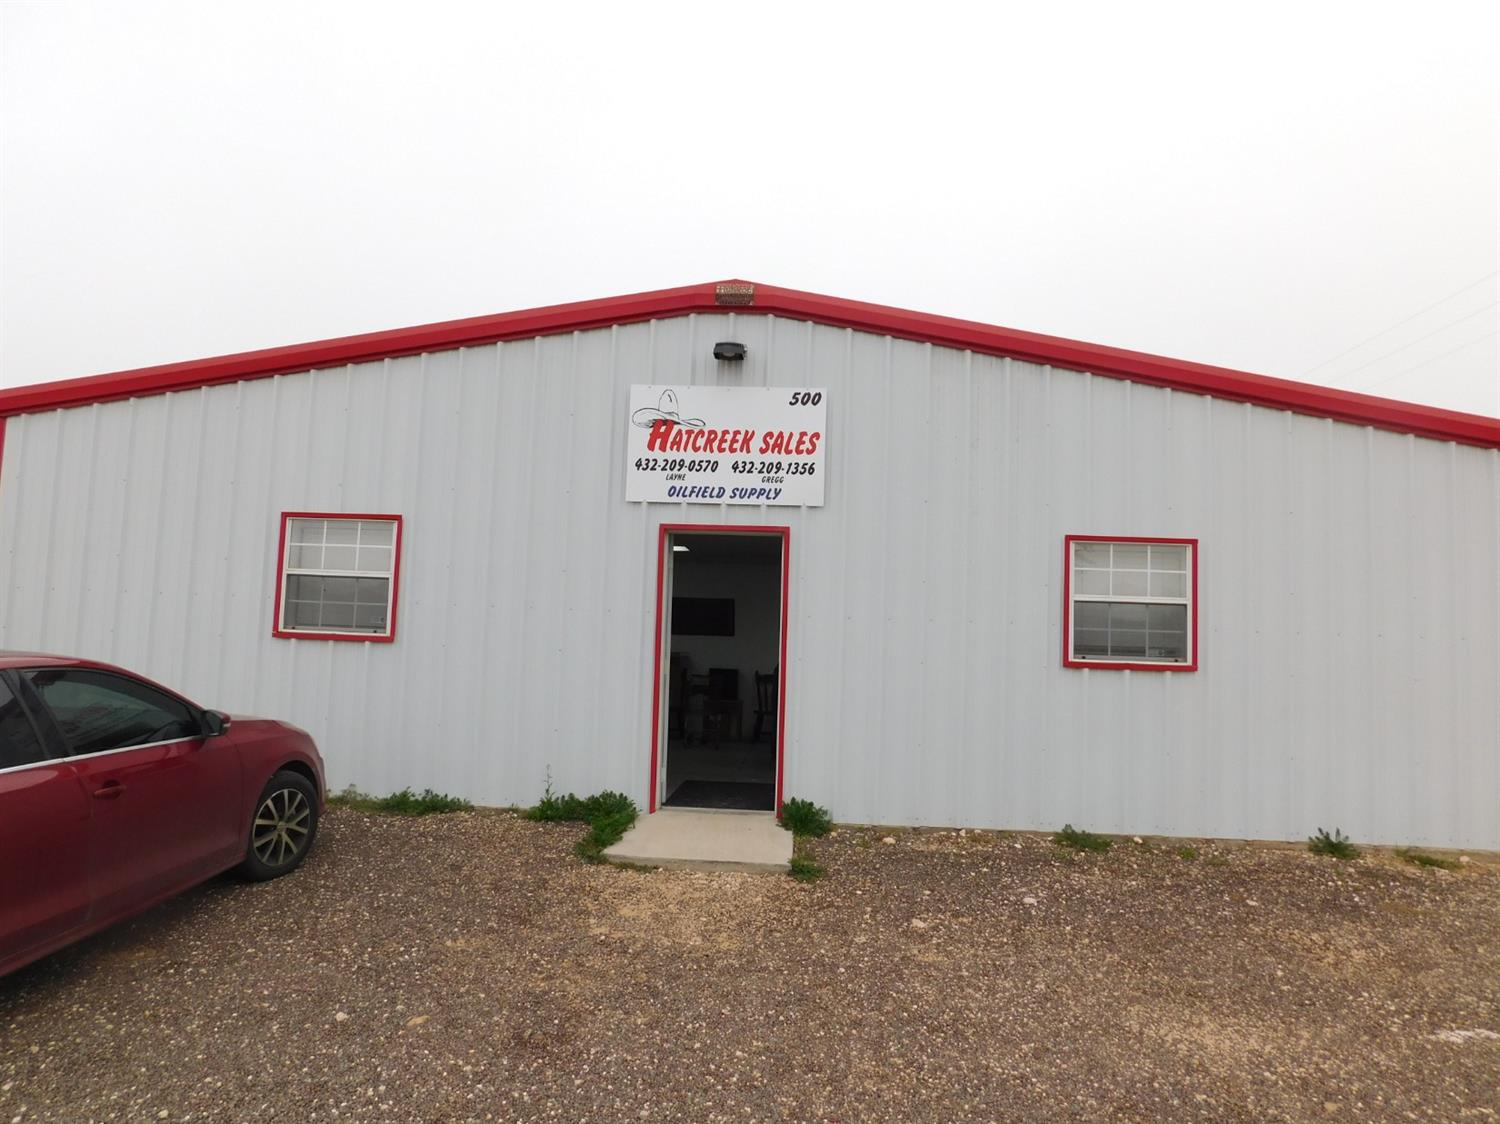 Turnkey, highly profitable business for sale. Oilfield Supply Business. Yearly Gross Sales above $1 million. NO DEBT. Highly profitable business year over year. Huge growth potential. Contact Listing agent for details.